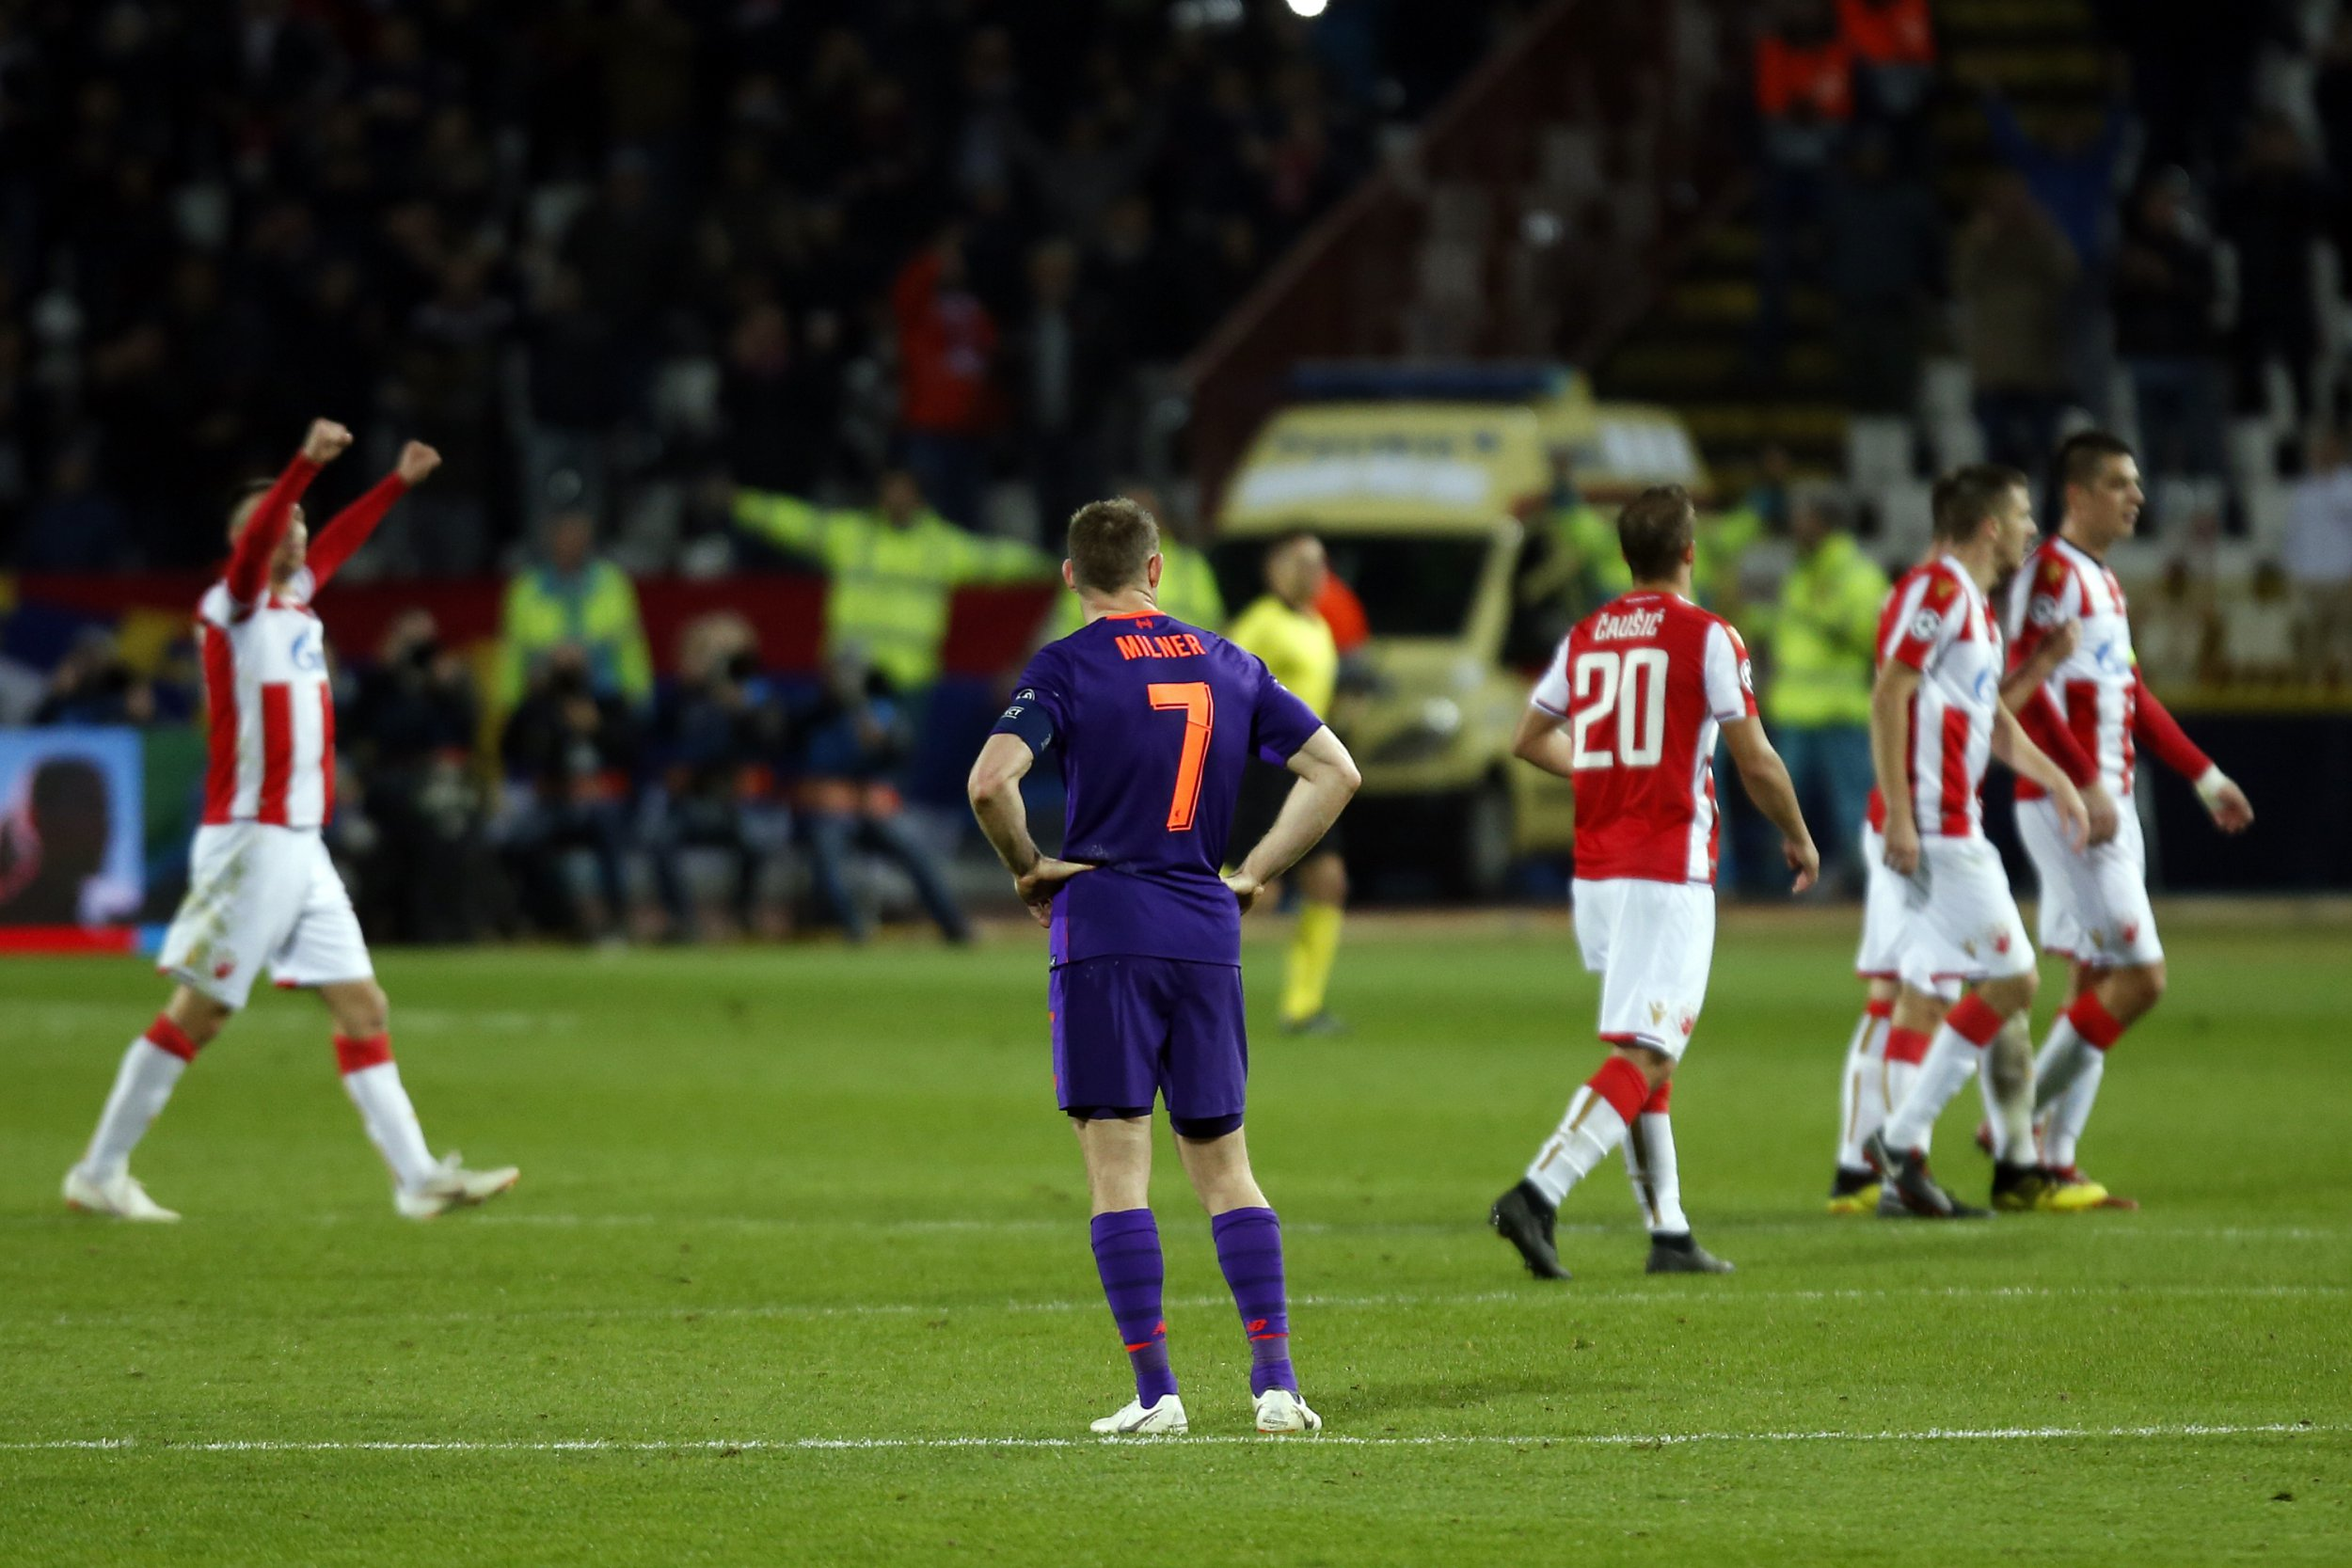 Liverpool skipper James Milner rues missed chances after humiliating defeat to Red Star Belgrade